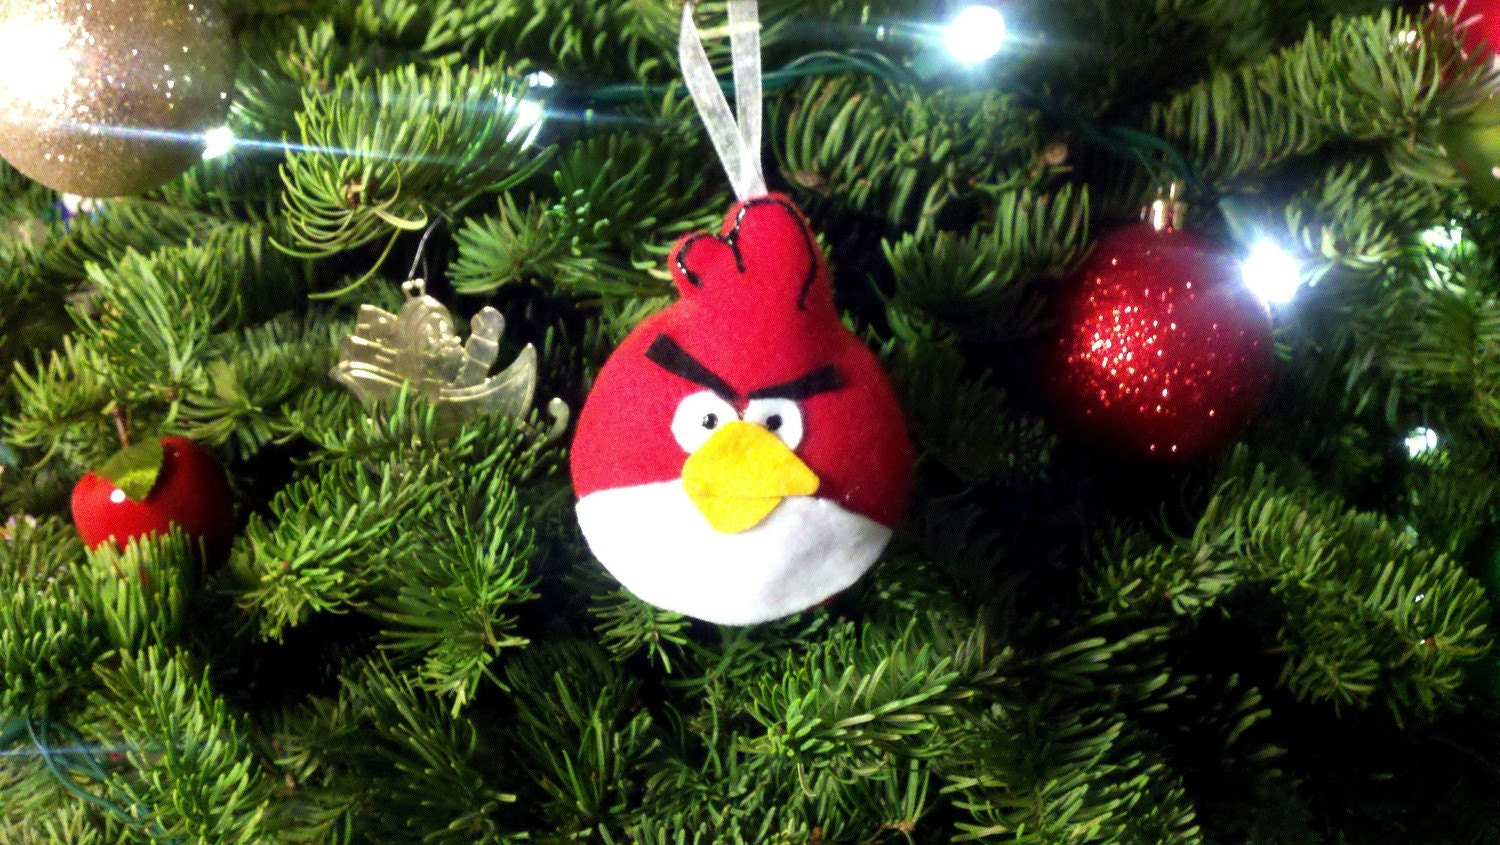 Christmas Decorations Red Birds : Angry birds christmas ornaments red bird